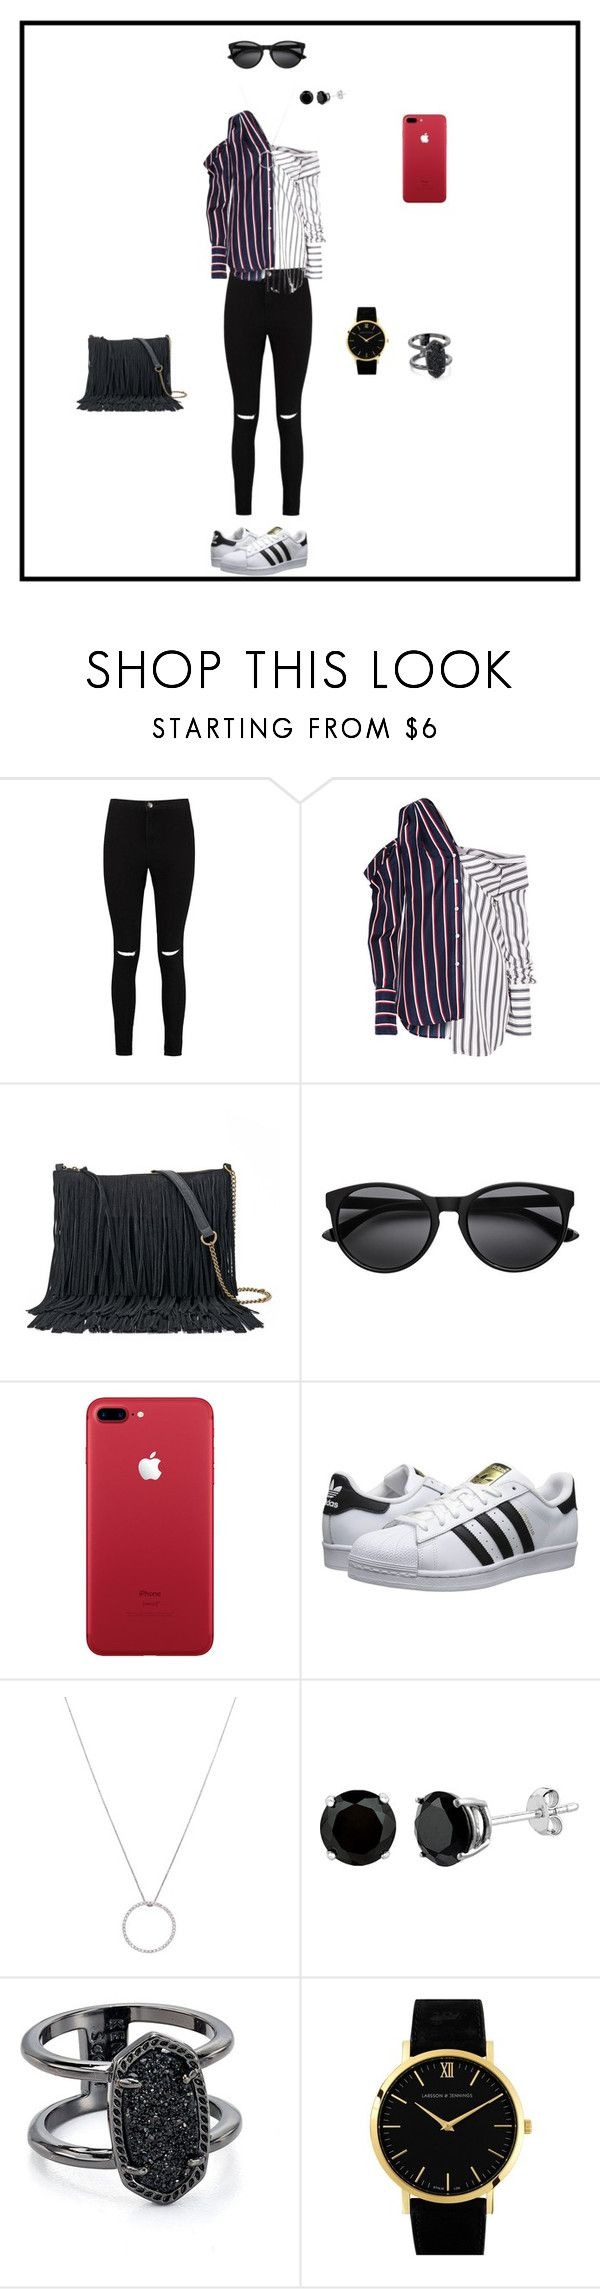 """""""HELLO"""" by drido1 ❤ liked on Polyvore featuring Boohoo, Monse, SONOMA Goods for Life, adidas Originals, Roberto Coin, Kendra Scott and Larsson & Jennings"""